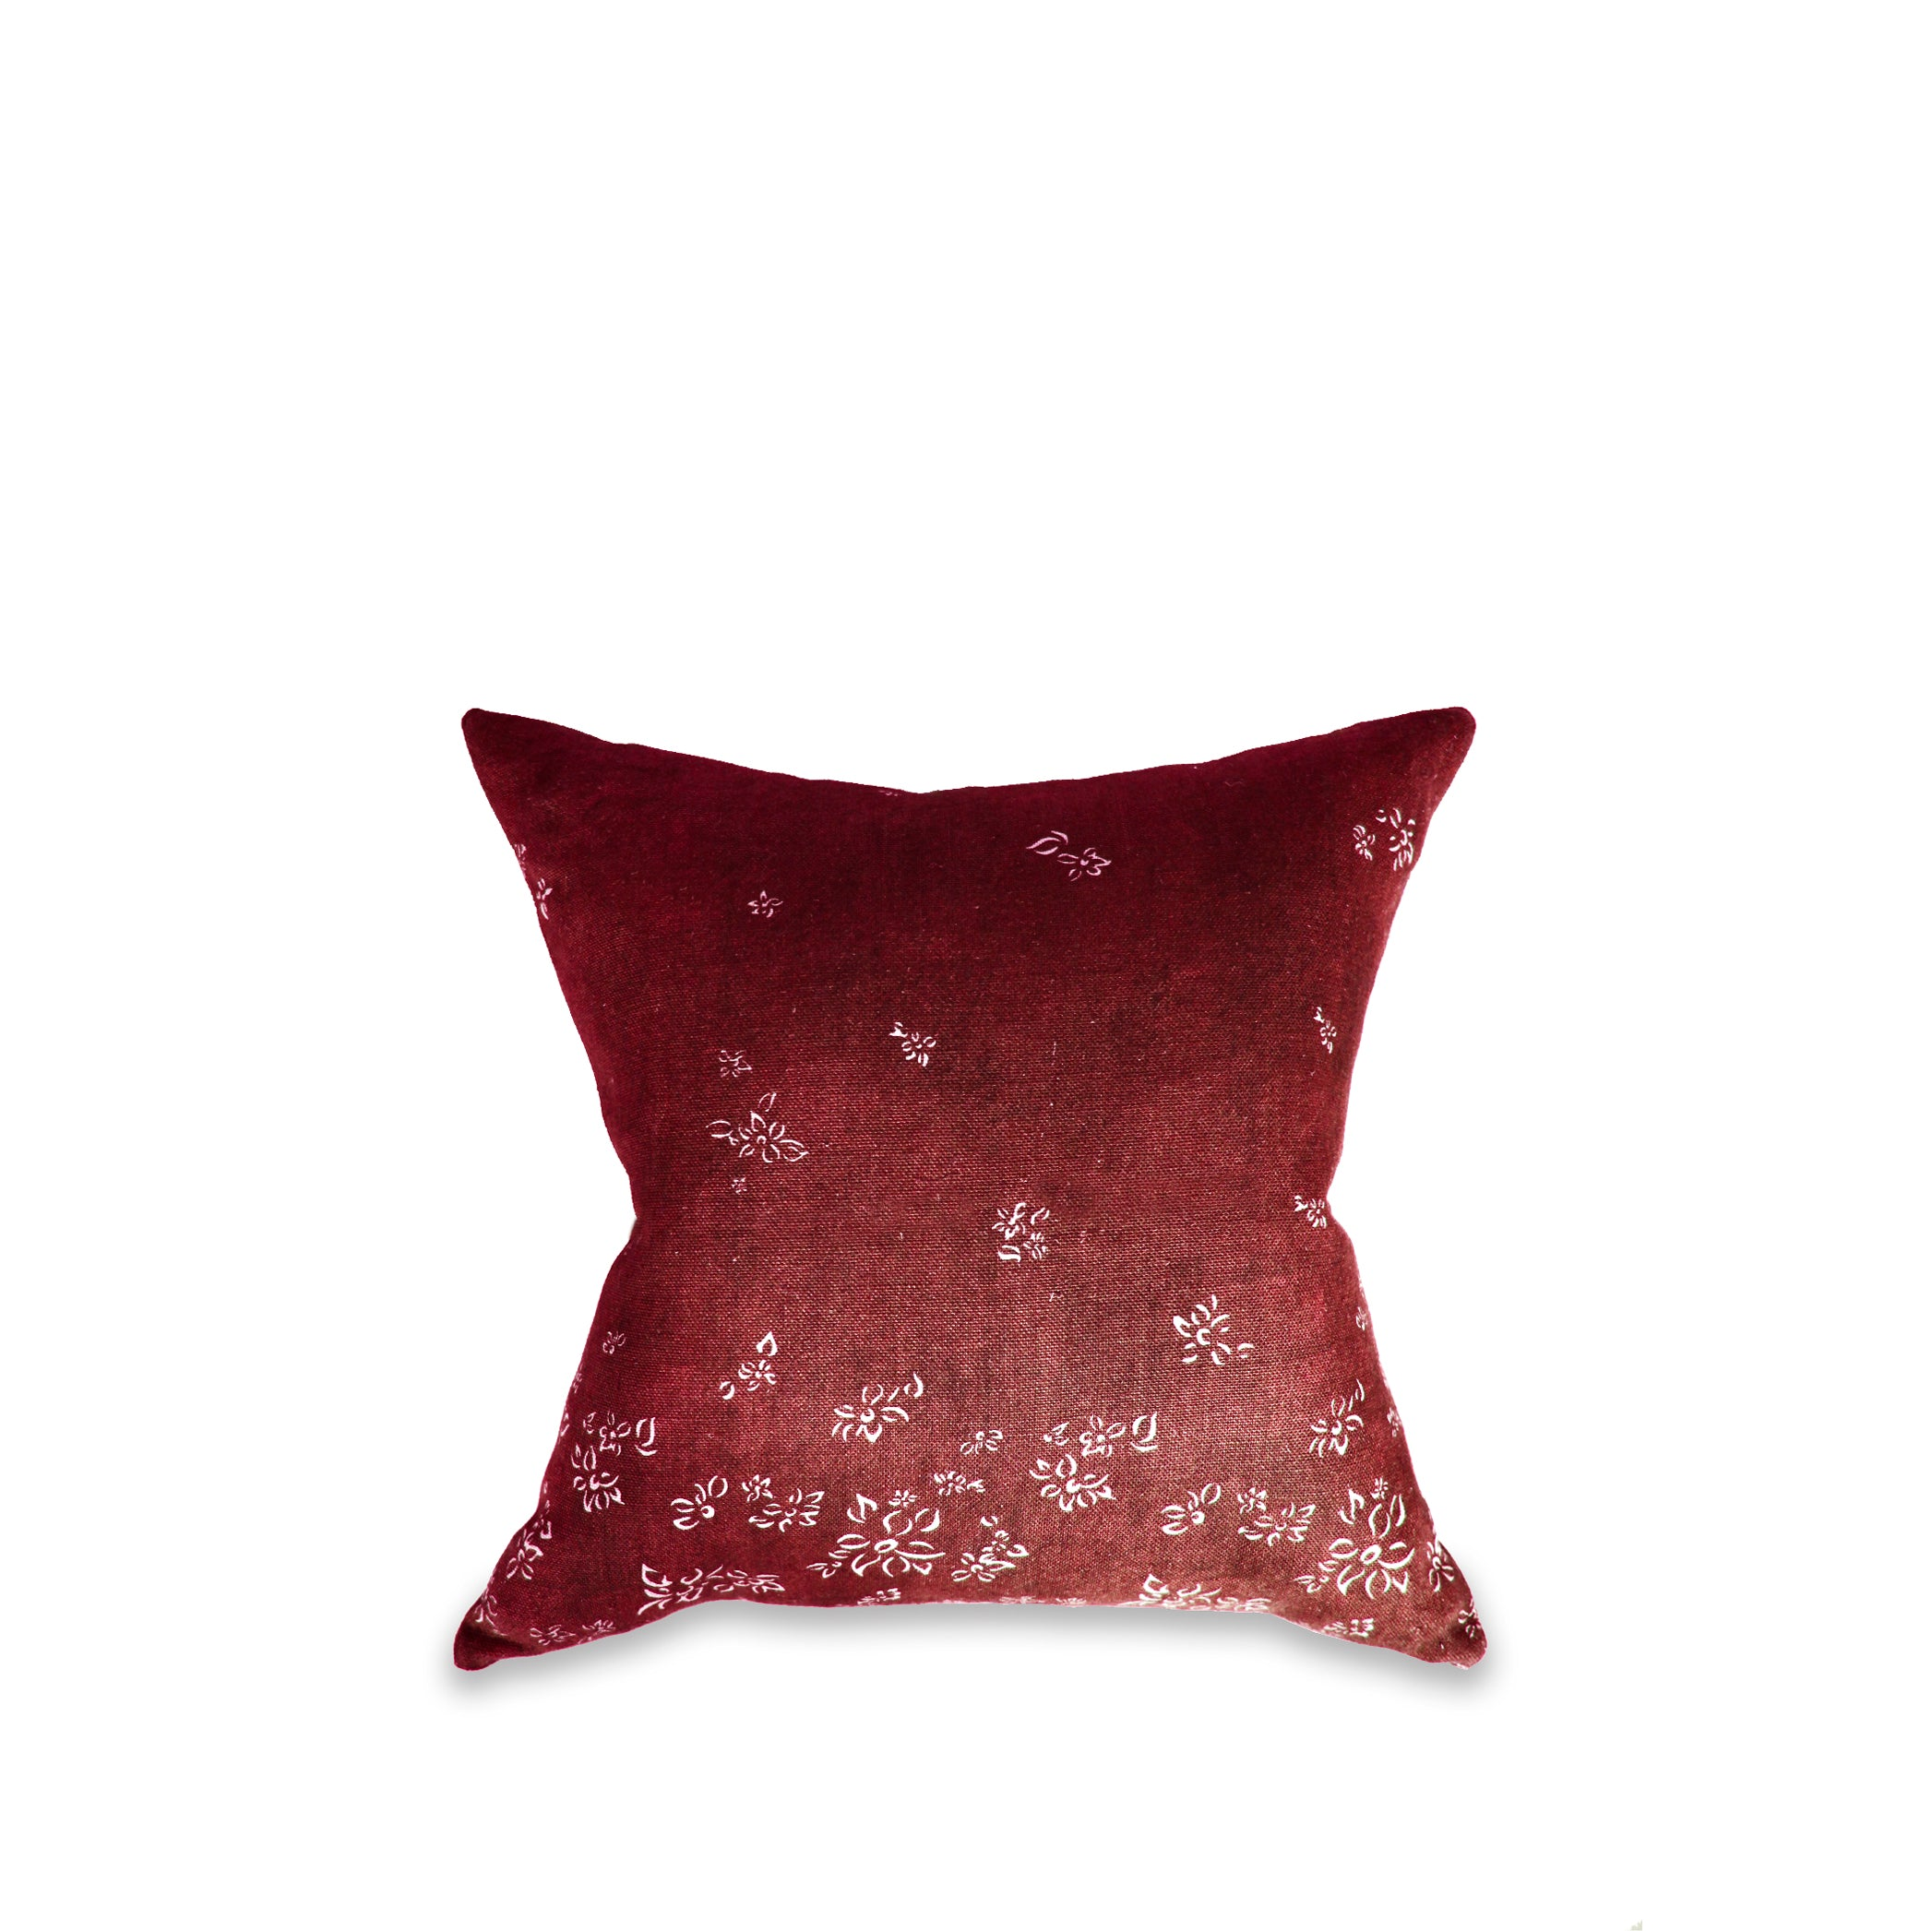 Heavy Linen Falling Flower Cushion in Full Field Claret Red, 50cm x 50cm